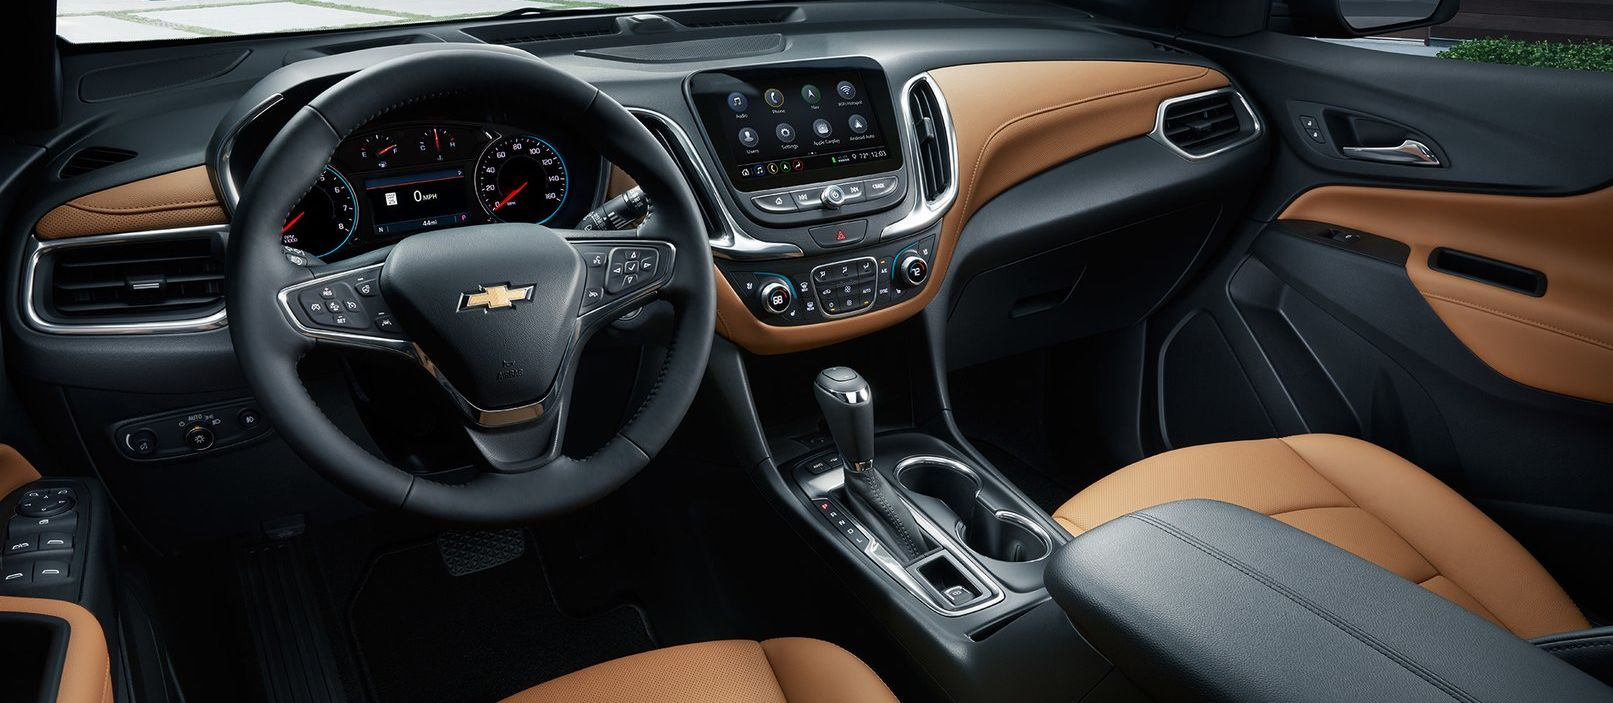 Spacious Cabin of the 2019 Chevrolet Equinox